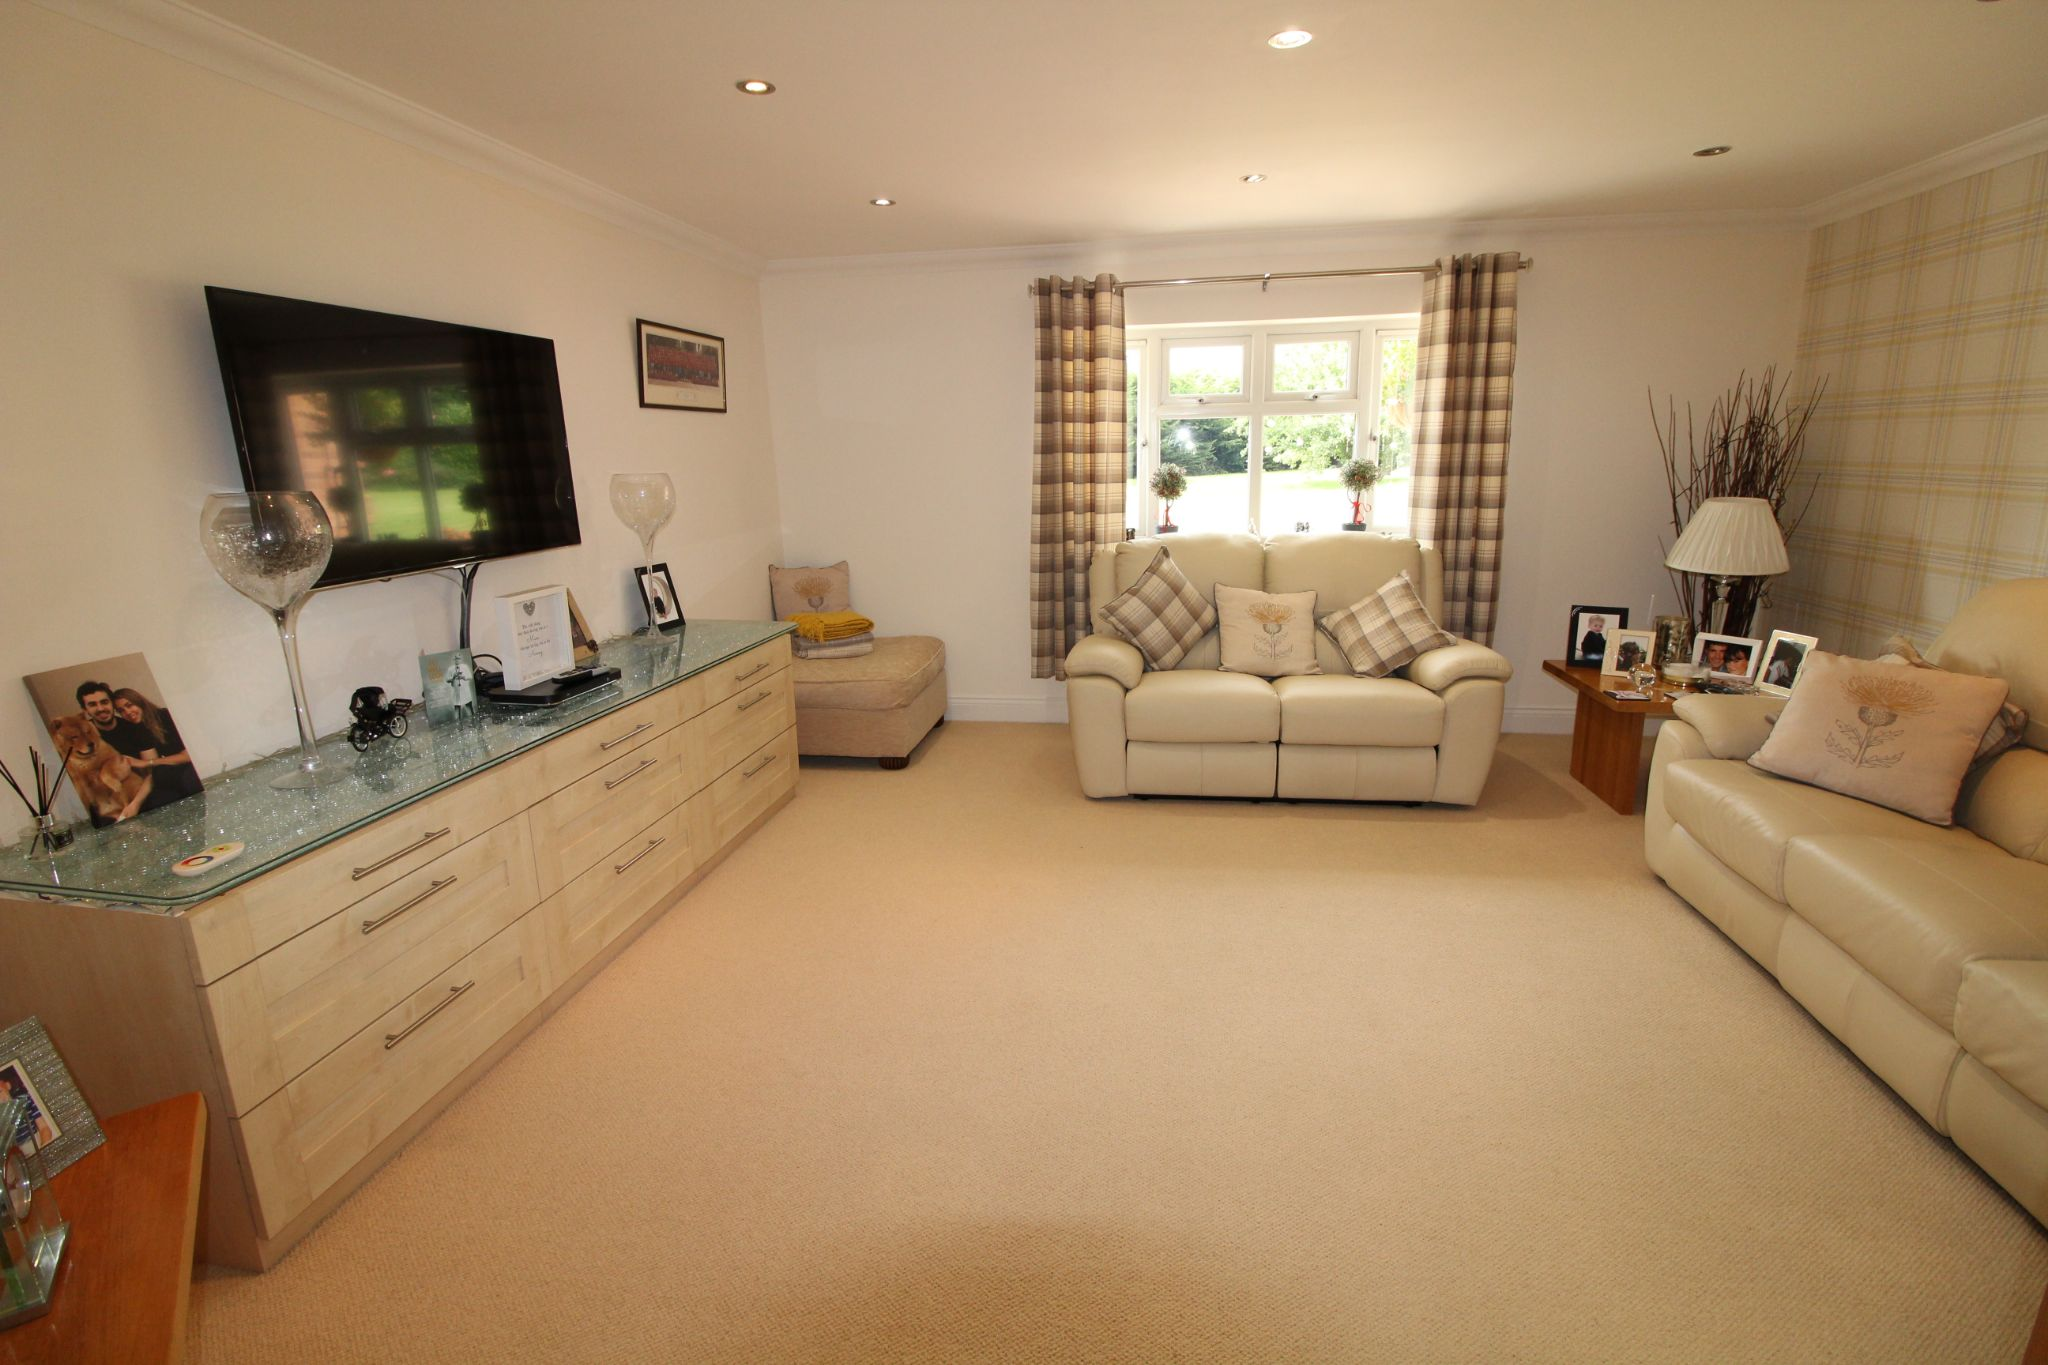 5 bedroom detached house SSTC in North Mymms - Photograph 10